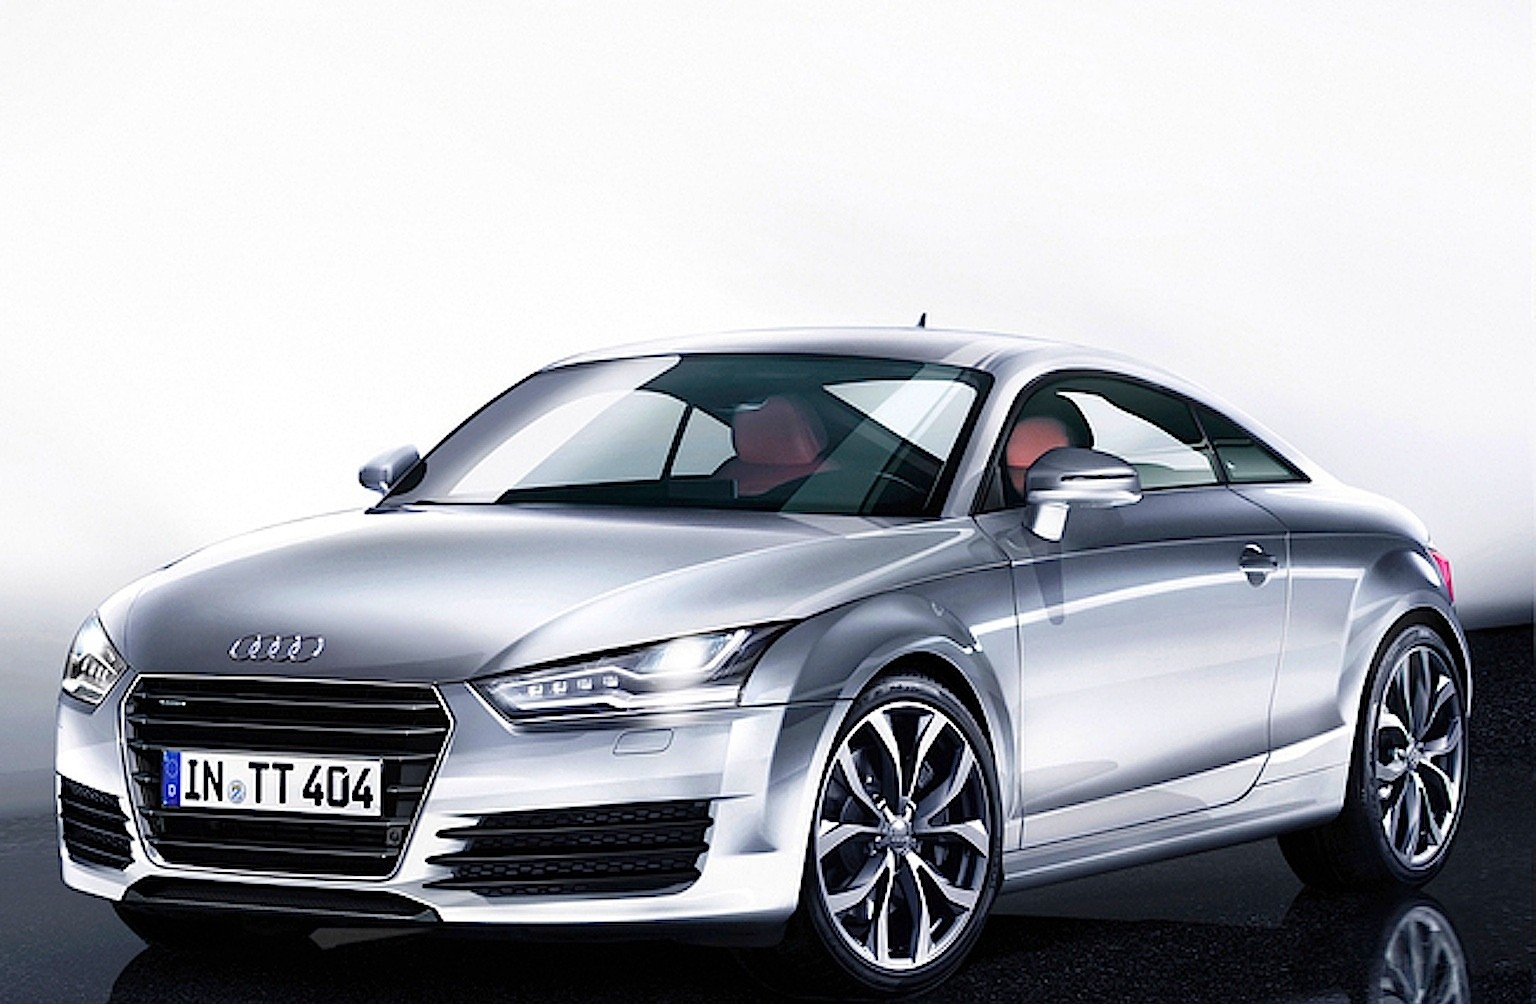 Captivating Audi Unveils Its New Range Of Sports Cars 2014